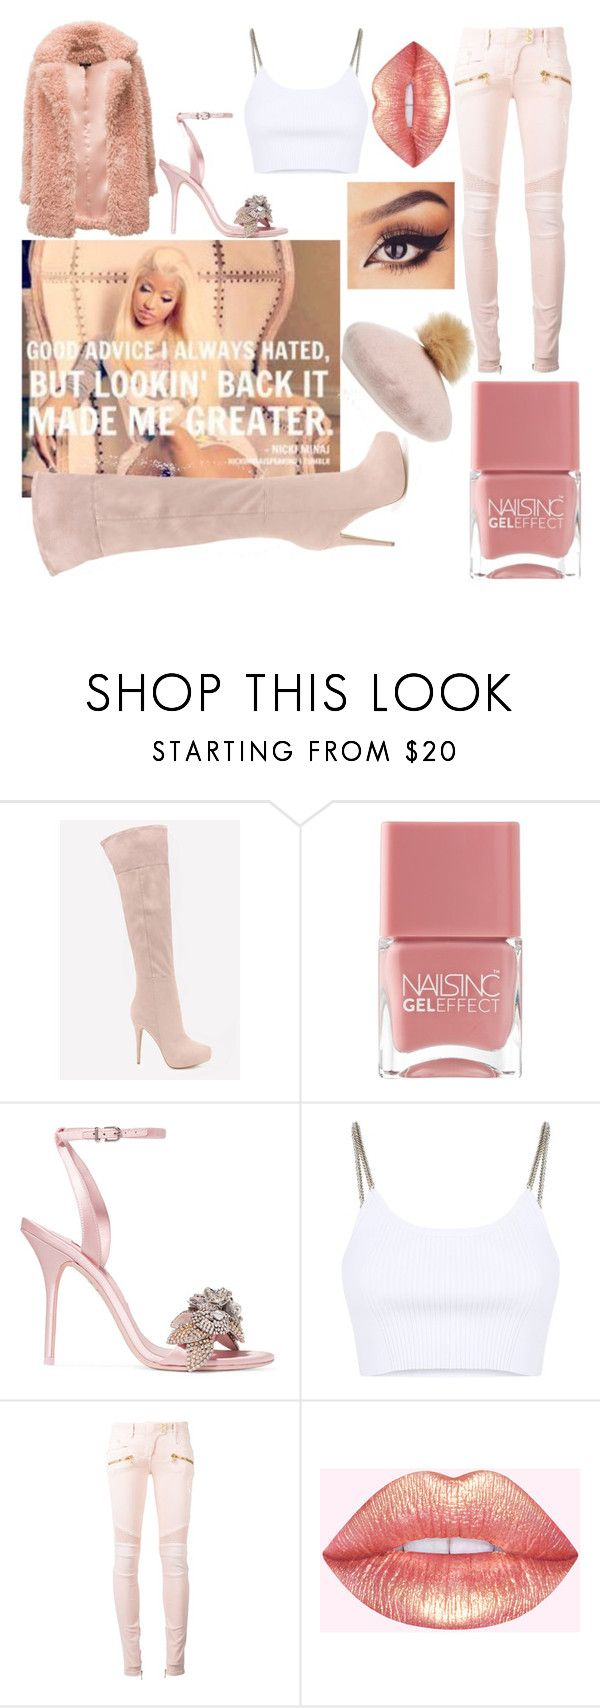 """All Things Pink"" by willaaa15 ❤ liked on Polyvore featuring Nicki Minaj, Bebe, Nails Inc., Sophia Webster, Alexander Wang, Balmain and NYC Underground"